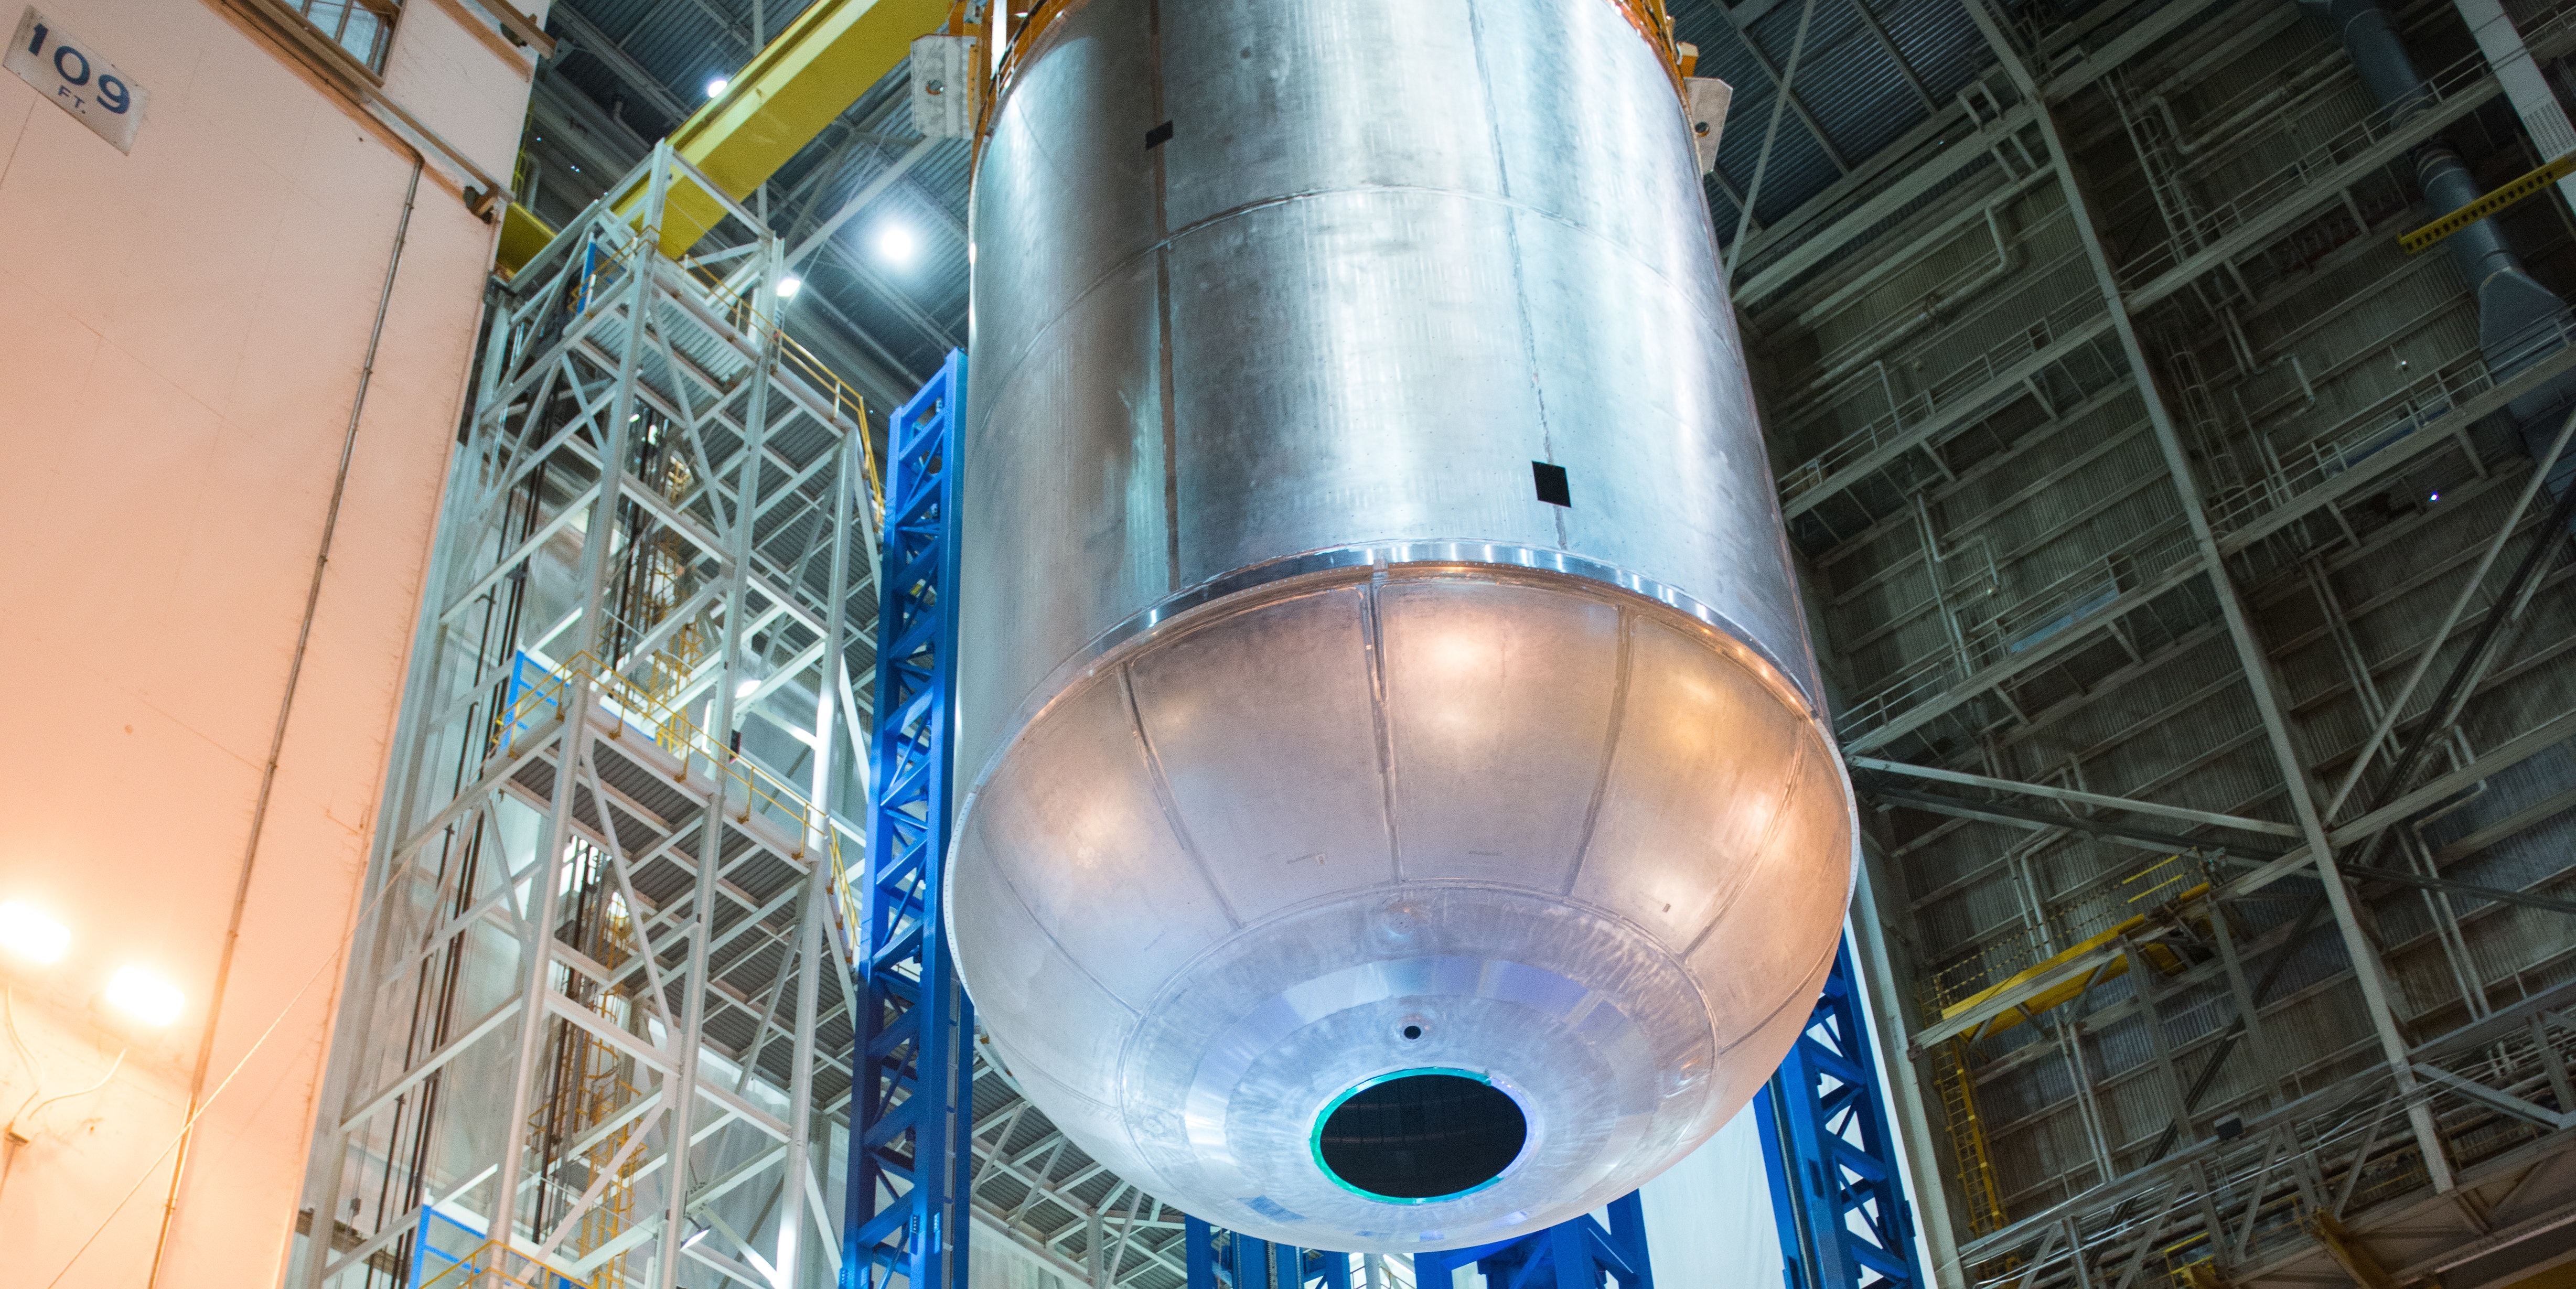 This tank holds 196,000 gallons of liquid oxygen.